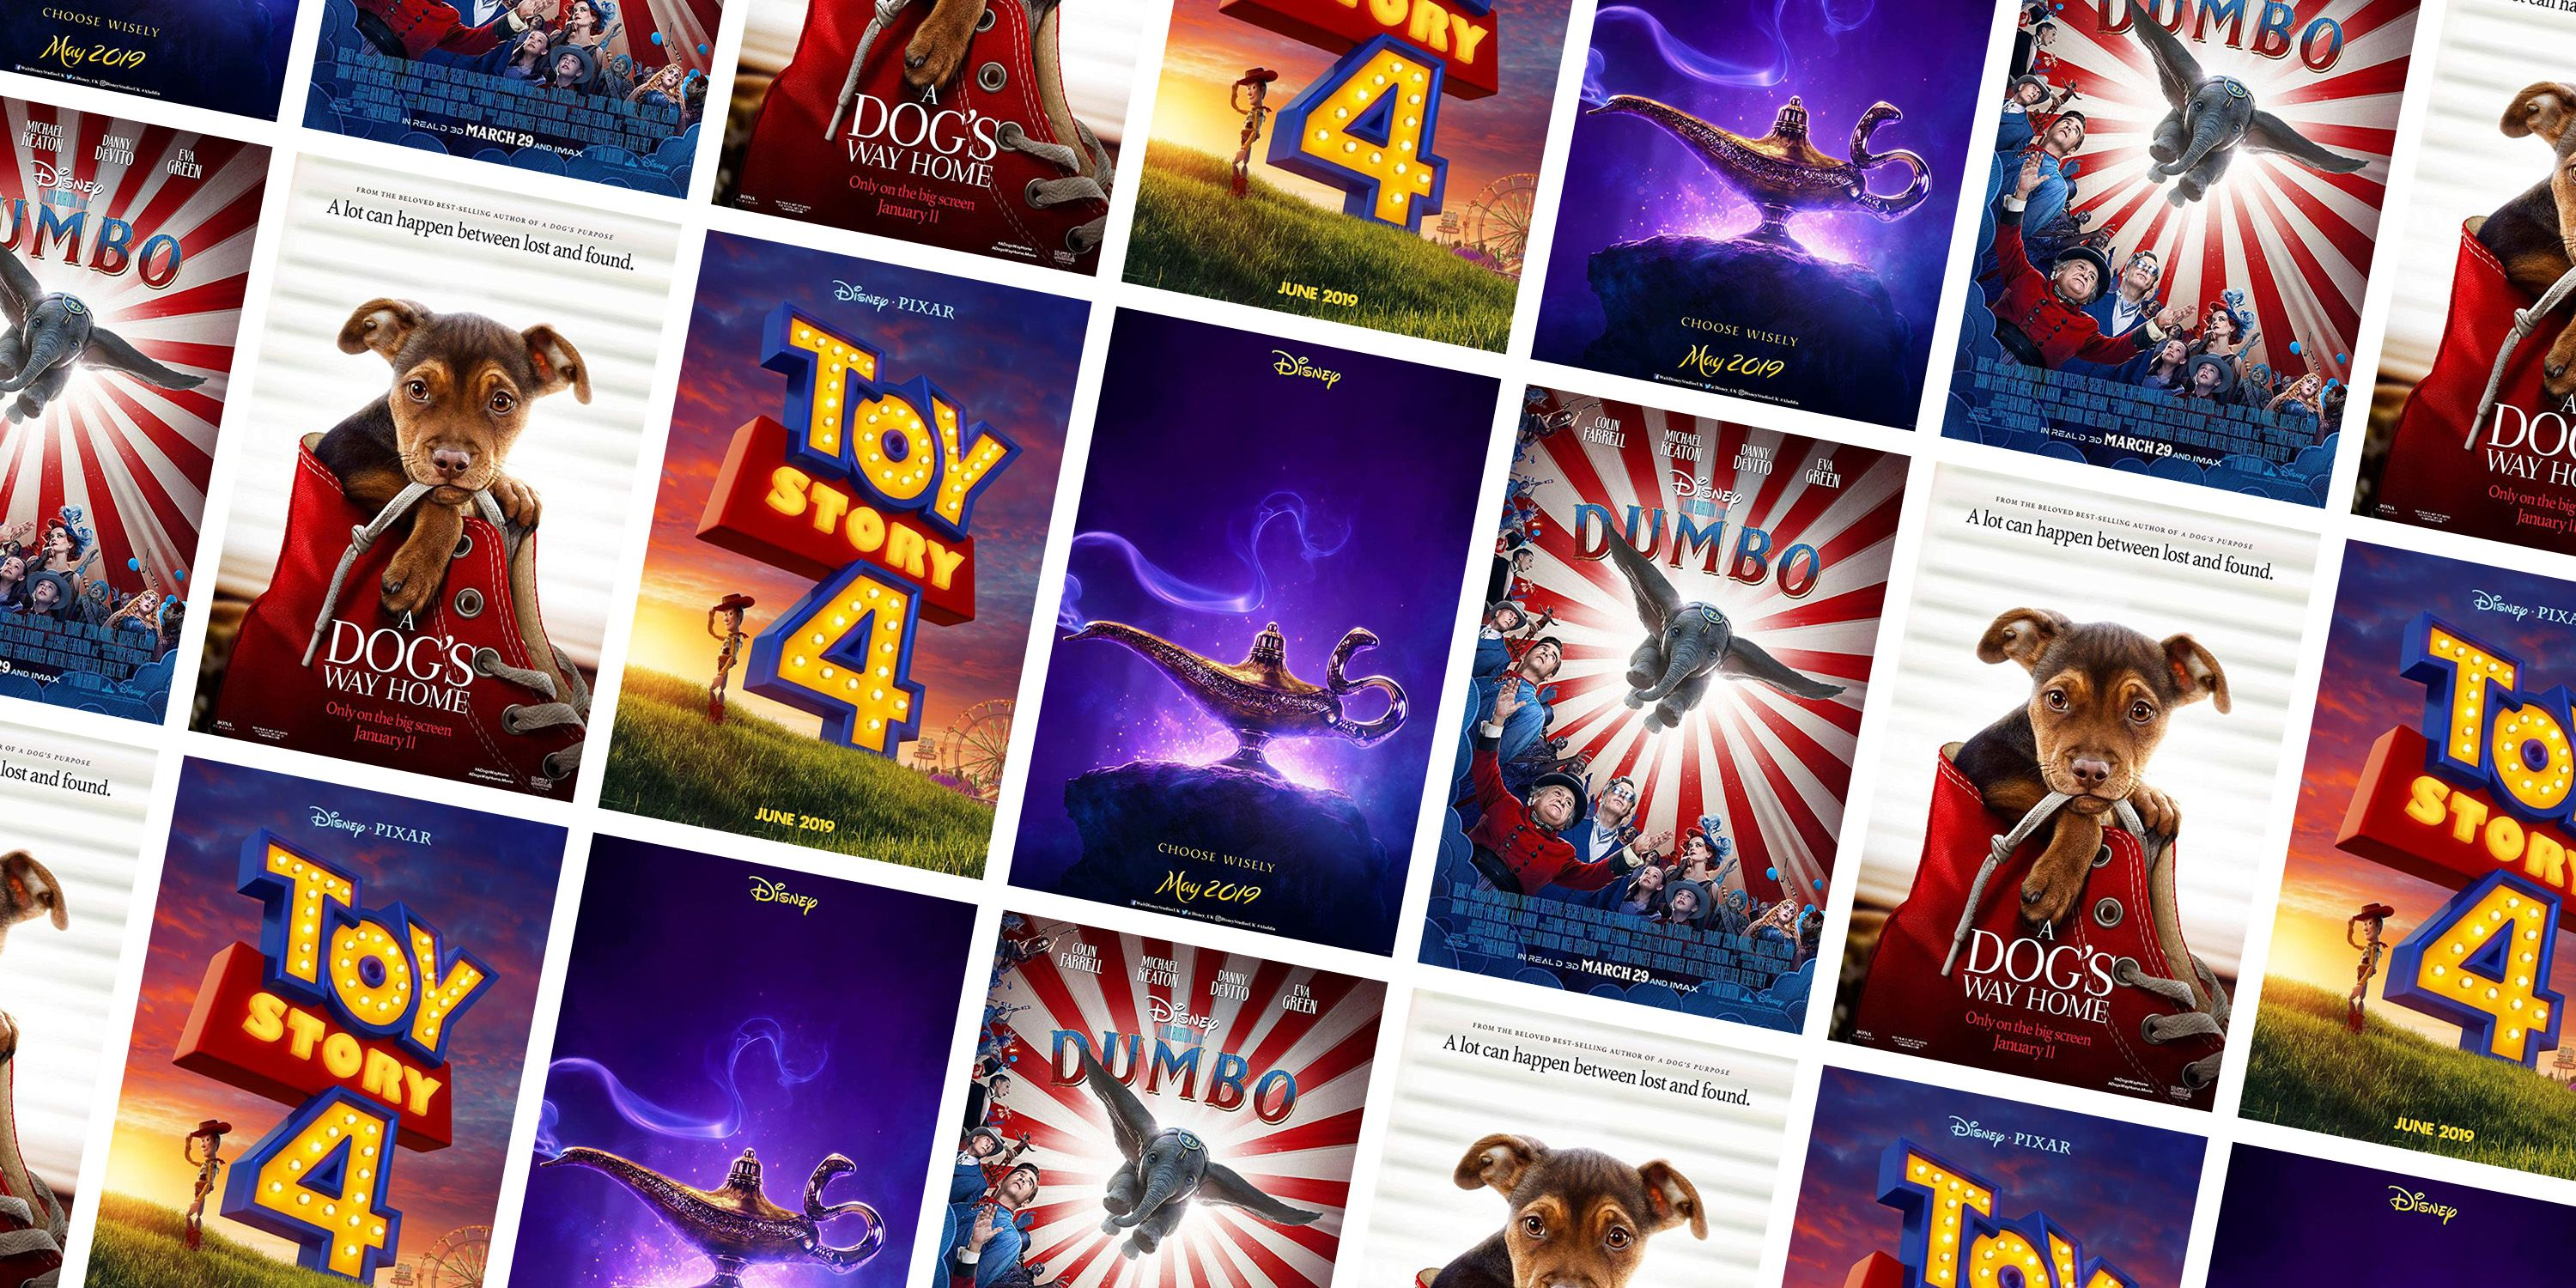 20 Best Kids Movies 2019 - New Kids Movies Coming Out in ...